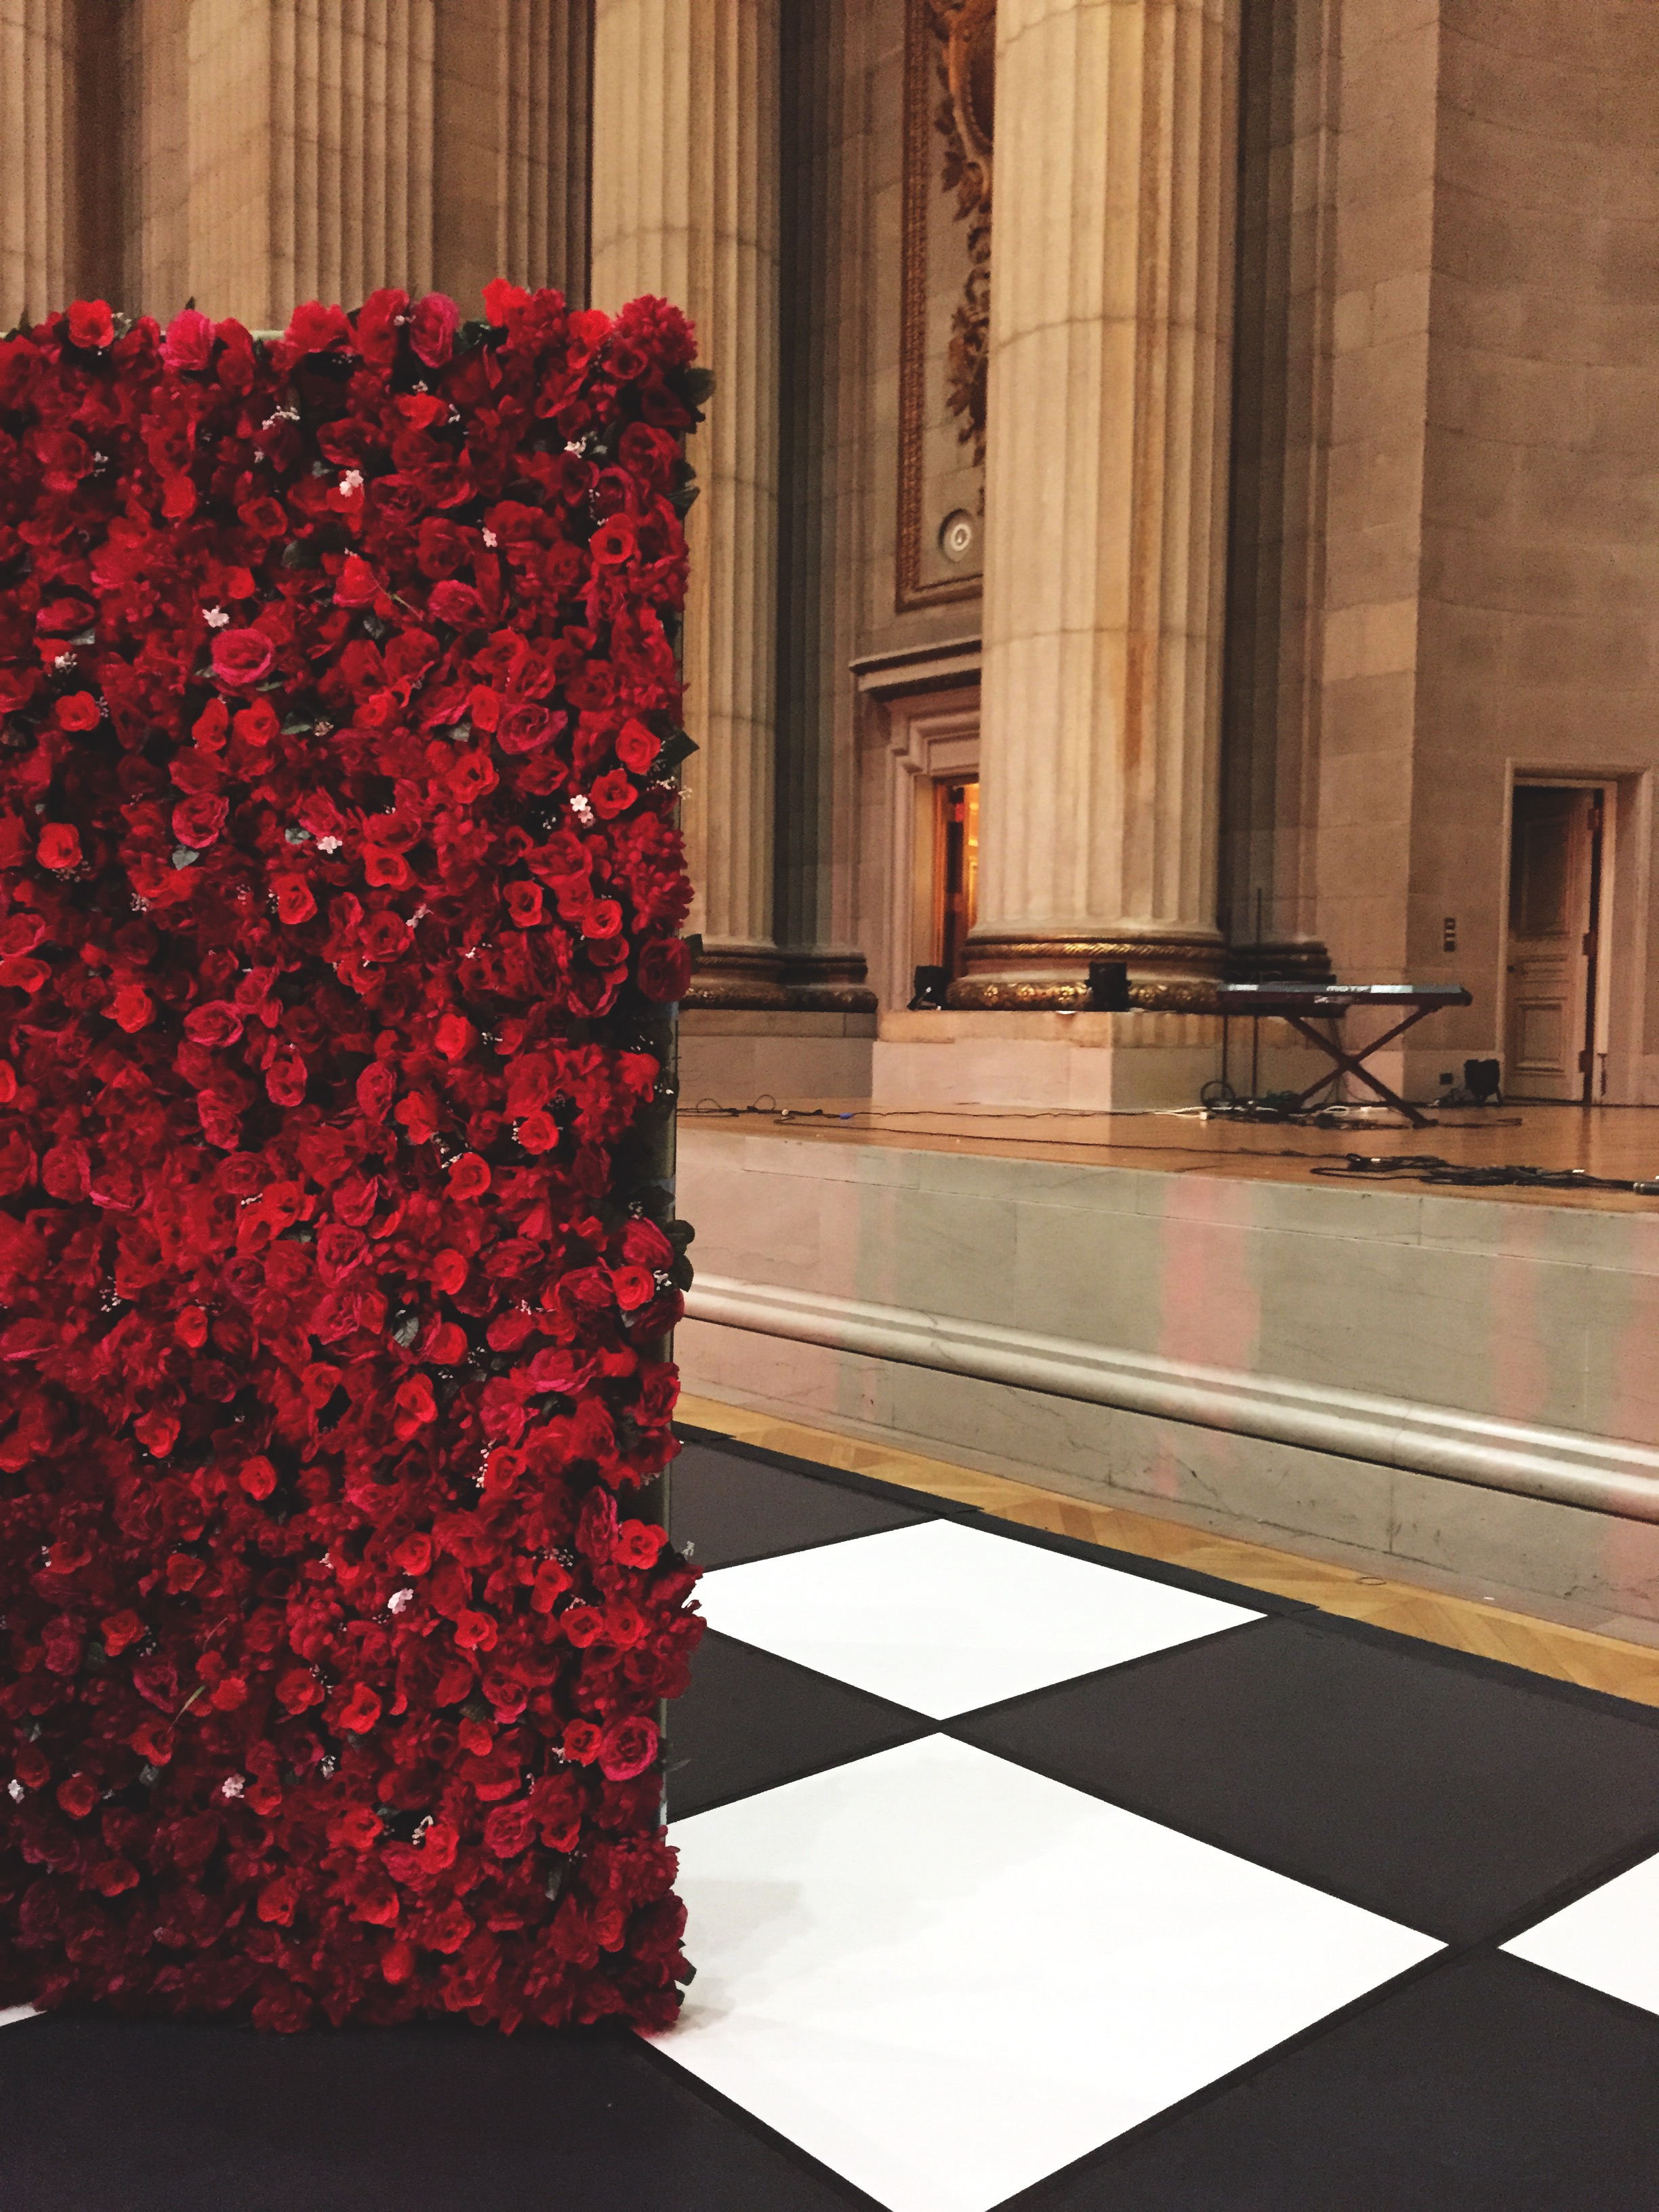 8 ft x 12 ft Rose Wall made with artificial silk flowers